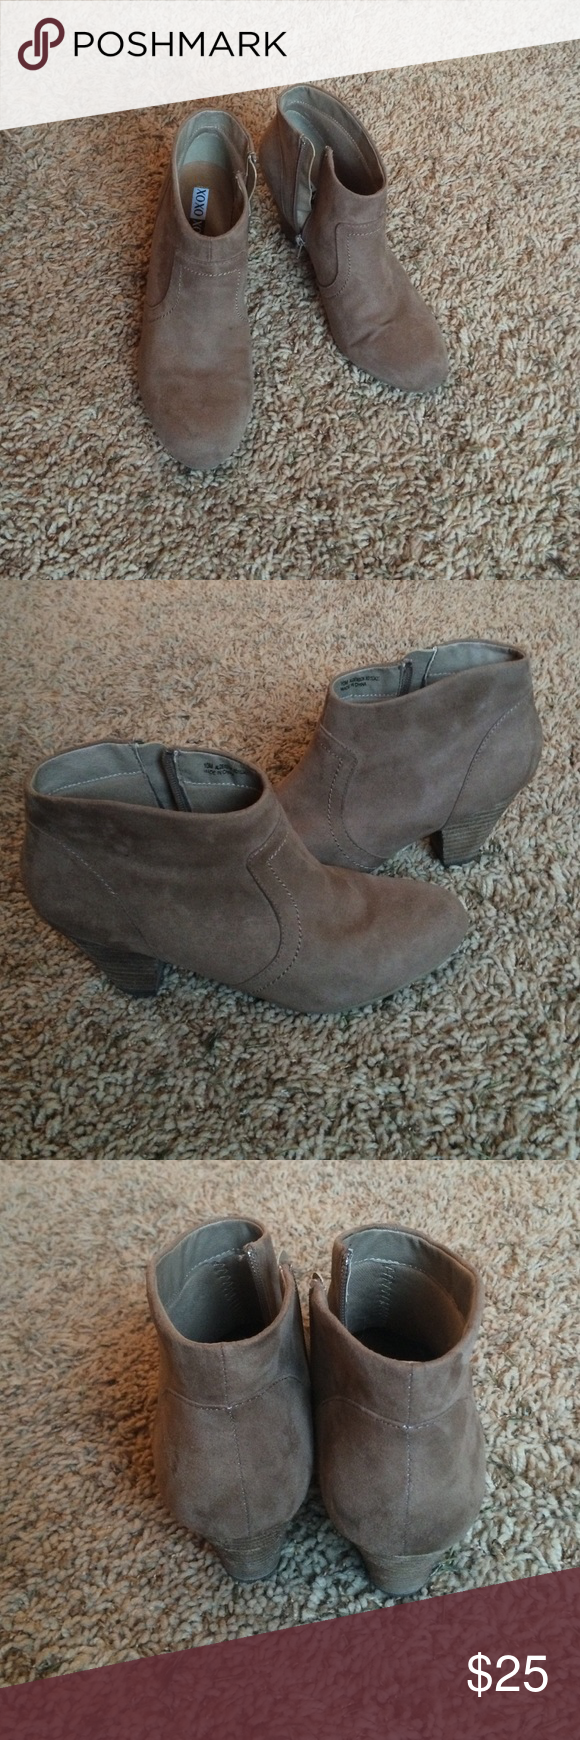 Xoxo Heeled Ankle Bootie Faux suede ankle boot 2 1/2 in. heel. Lightly worn, new. XOXO Shoes Heeled Boots